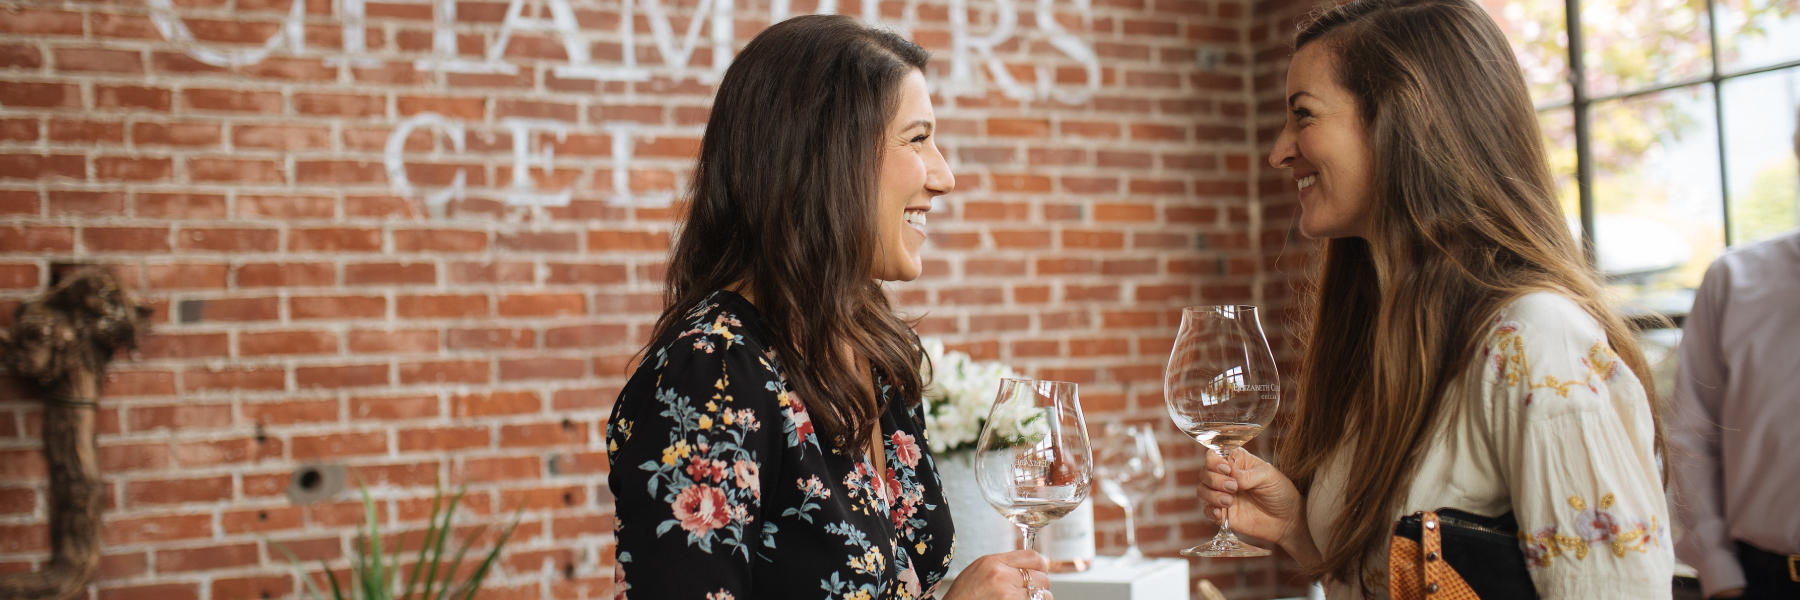 Meet a friend at Elizabeth Chambers Cellar in McMinnville, Oregon